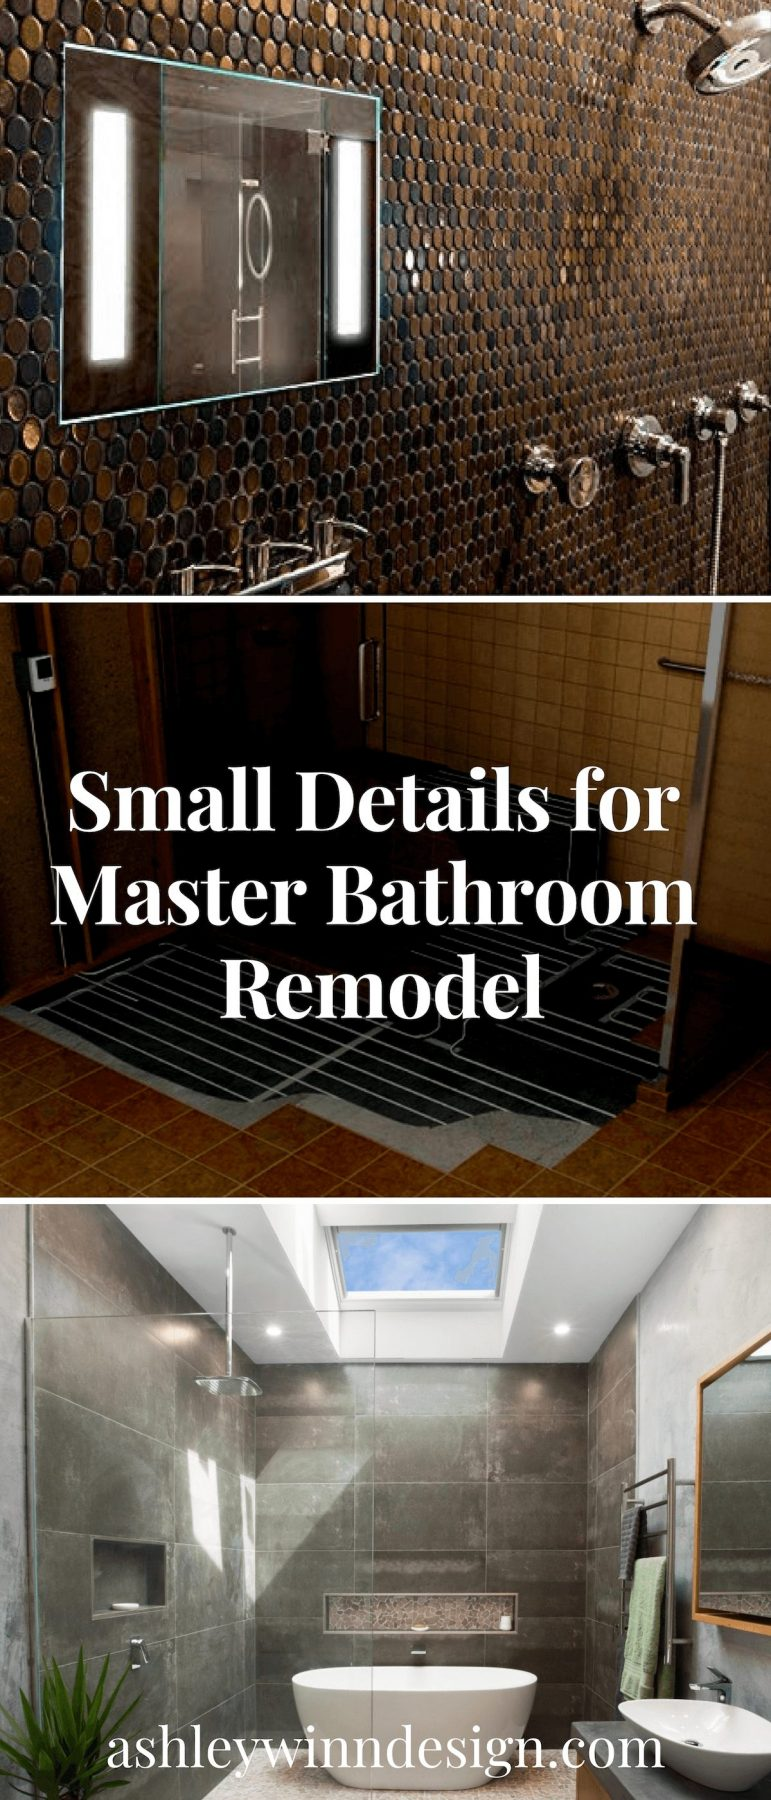 Small Details for Master Bathroom Remodel